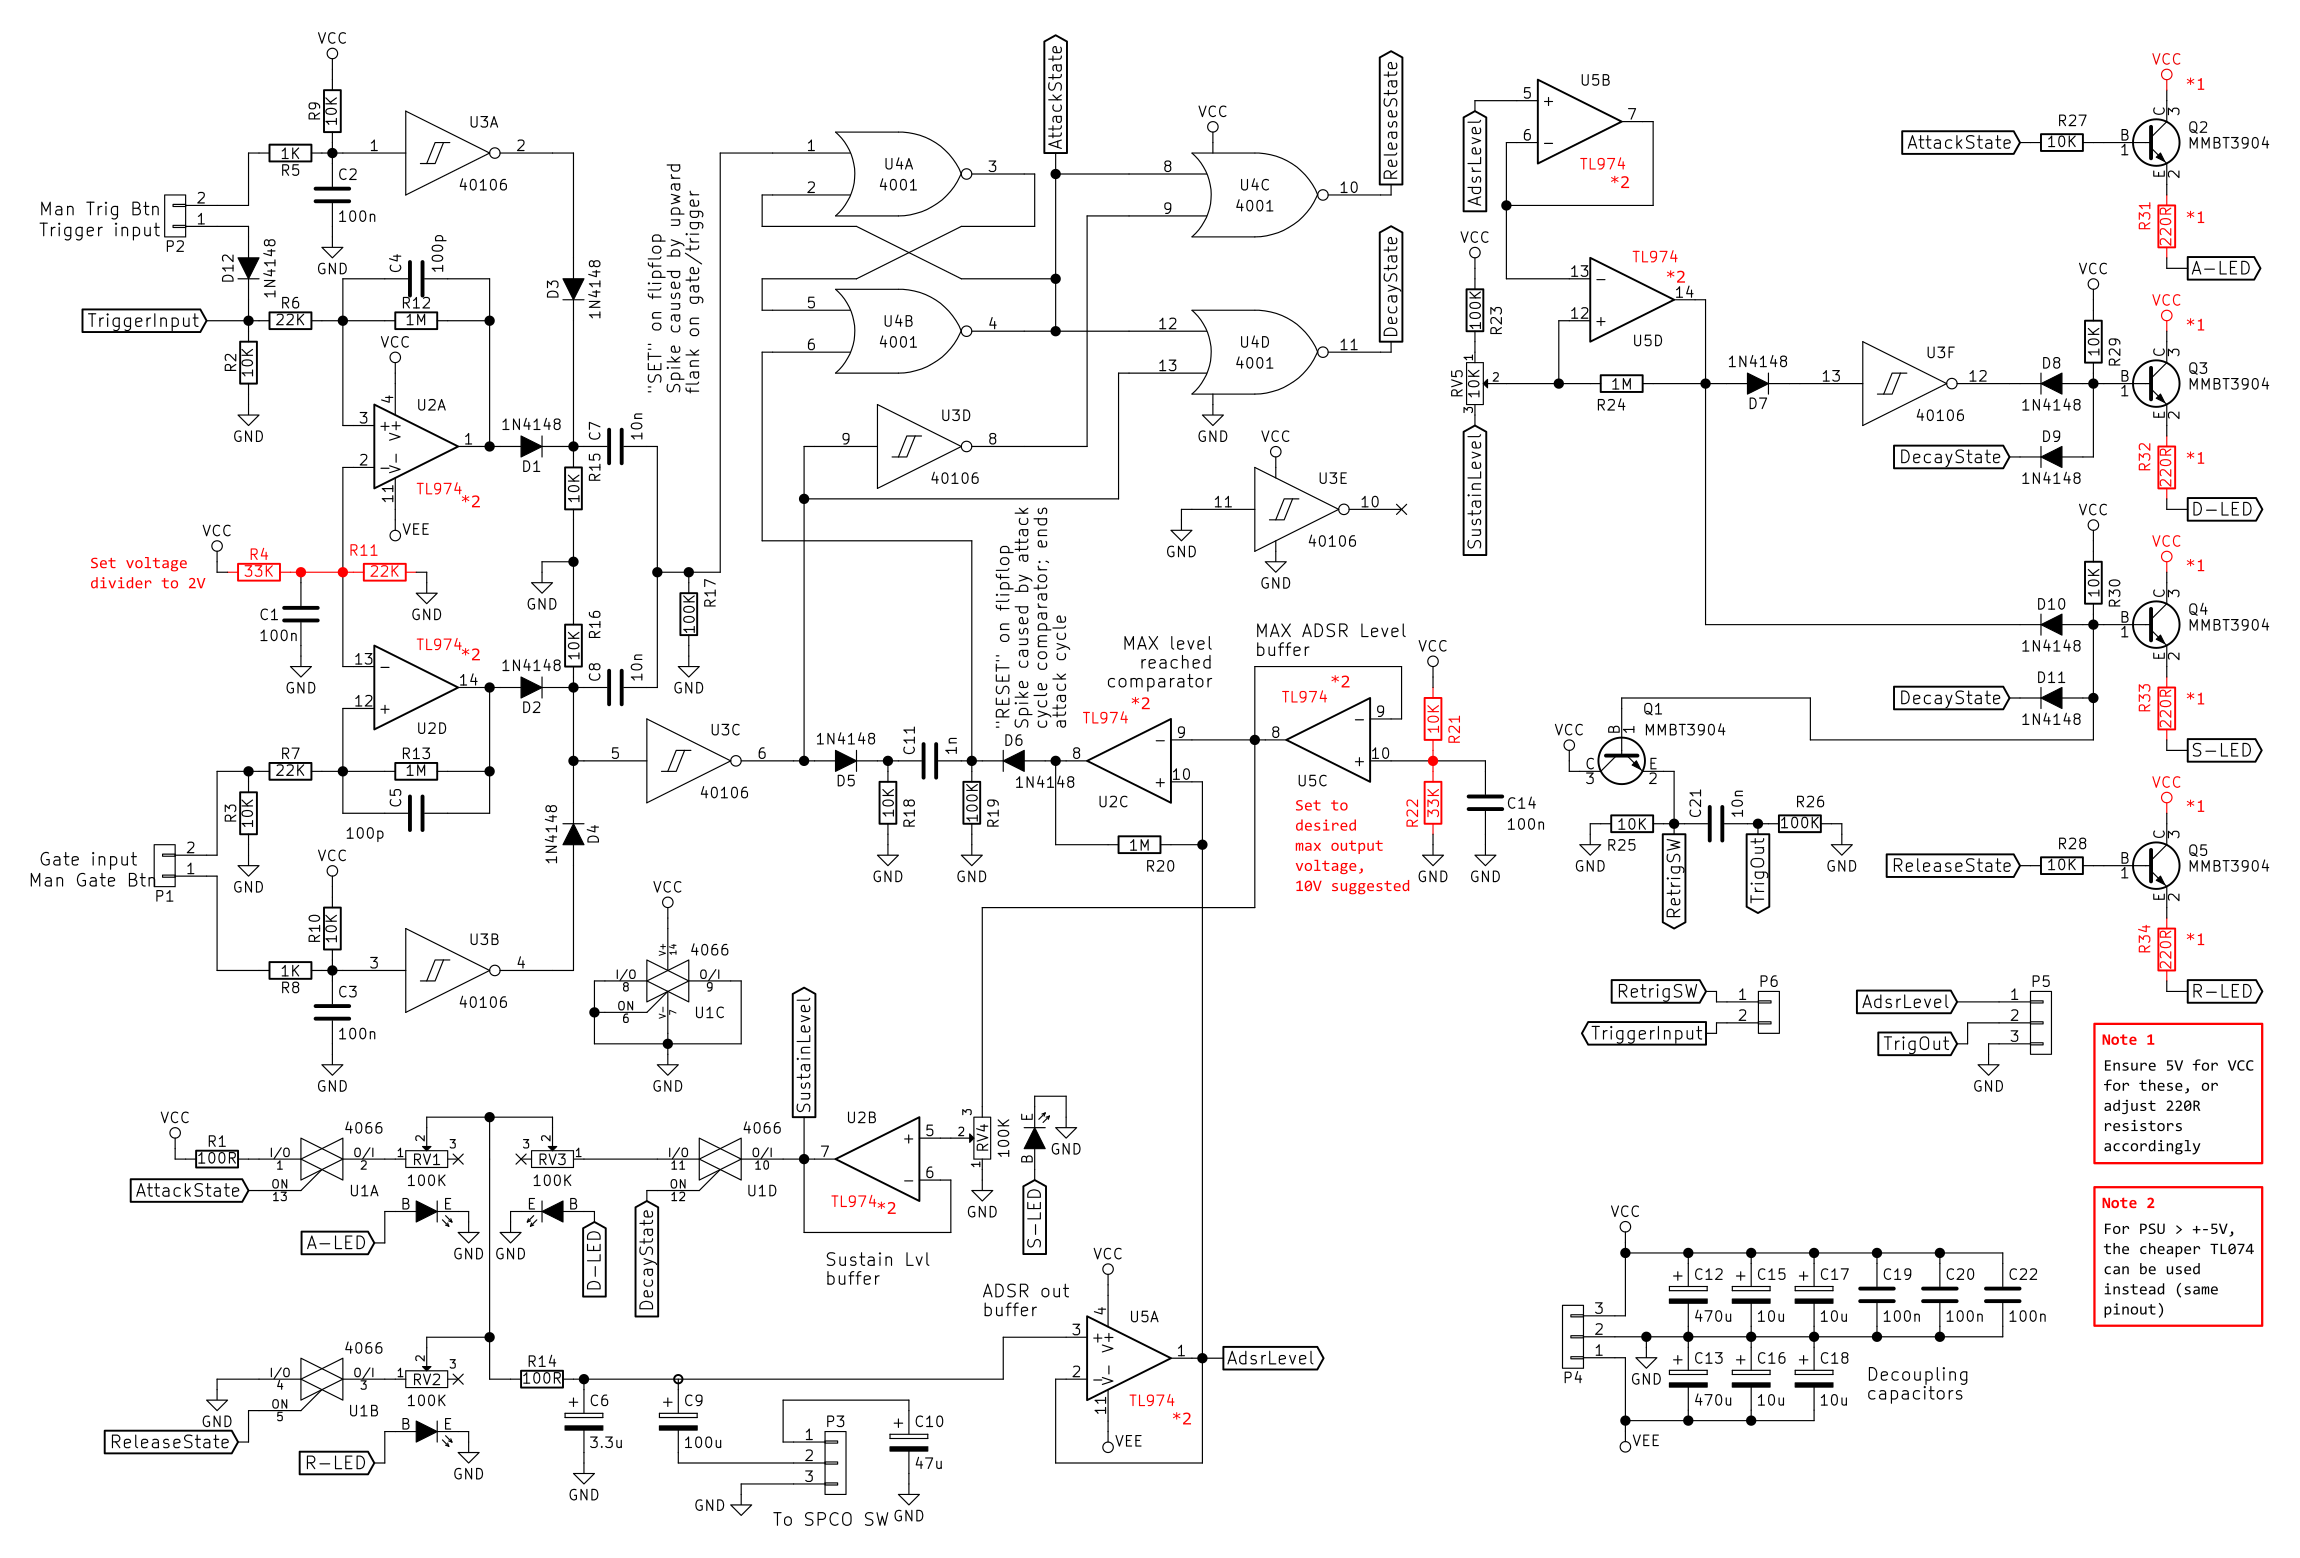 555 Timer Helpers Schematic Adsr Envelope Generator Module Synth Diy With Mich The Complete Circuit Pointing Out Components That Need Value Changes When Using A Different